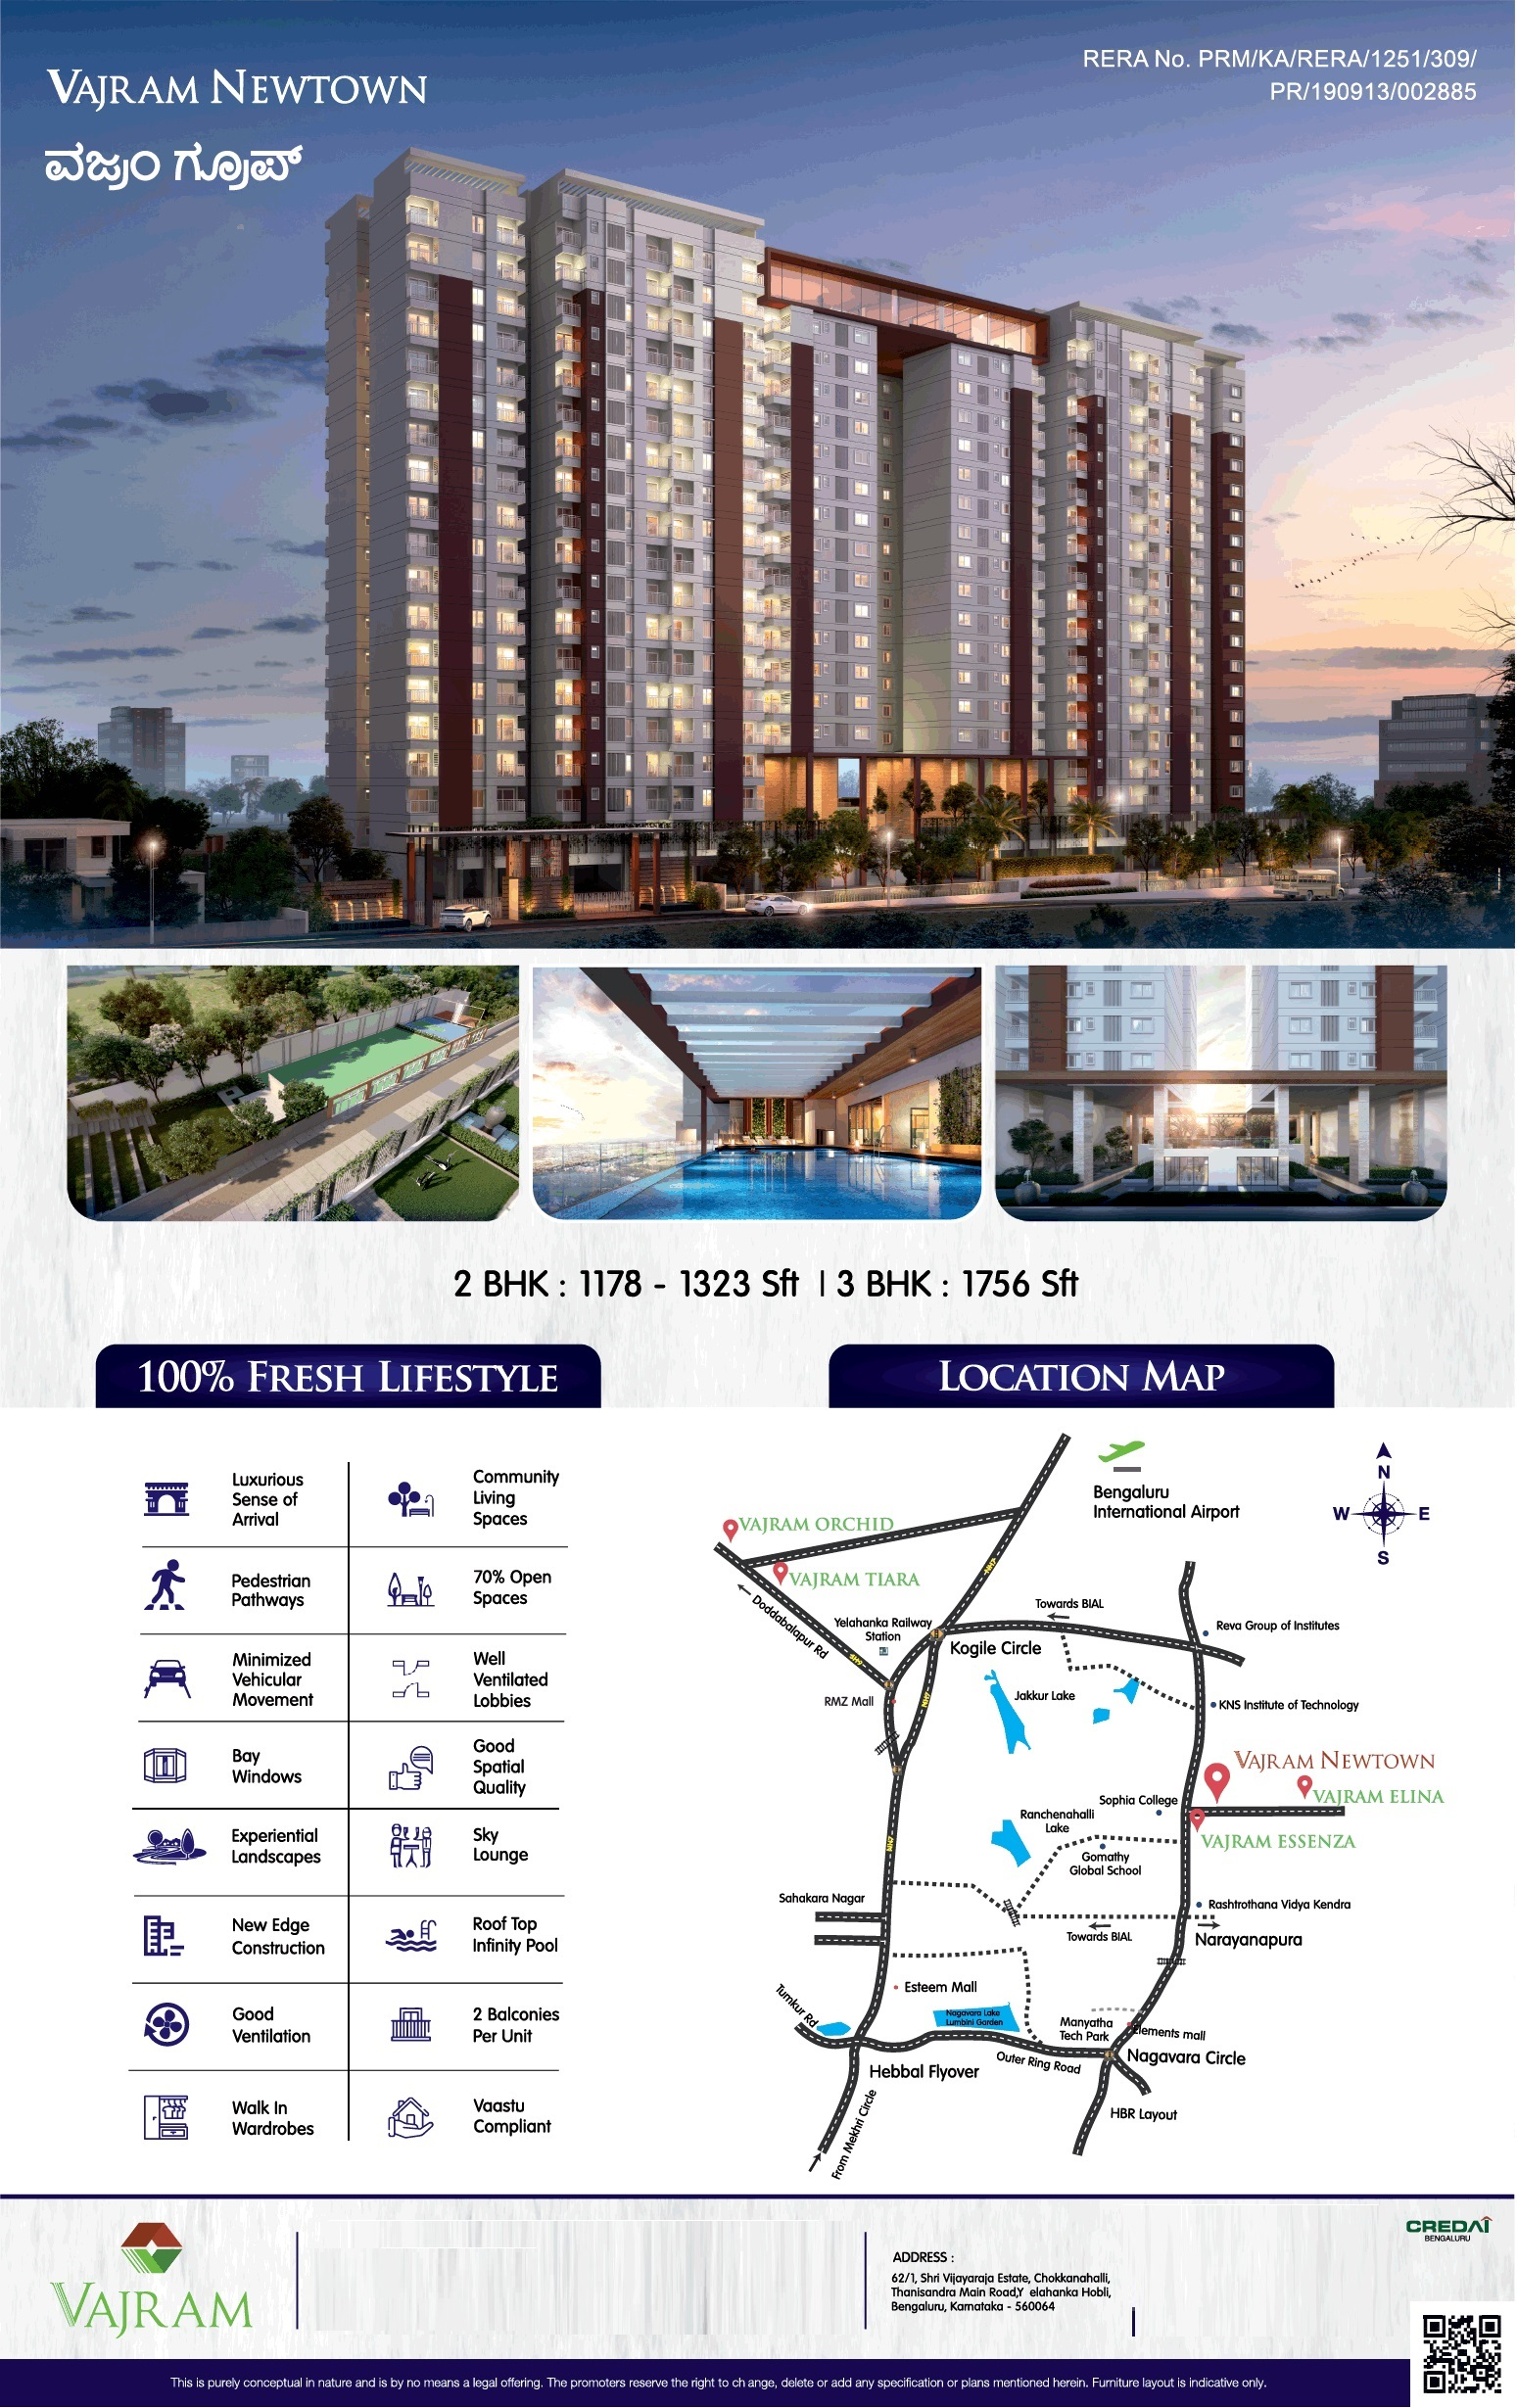 Vajram Newtown 2 3 BHK Rs 59 Lac in Thanisandra Main Road Bangalore